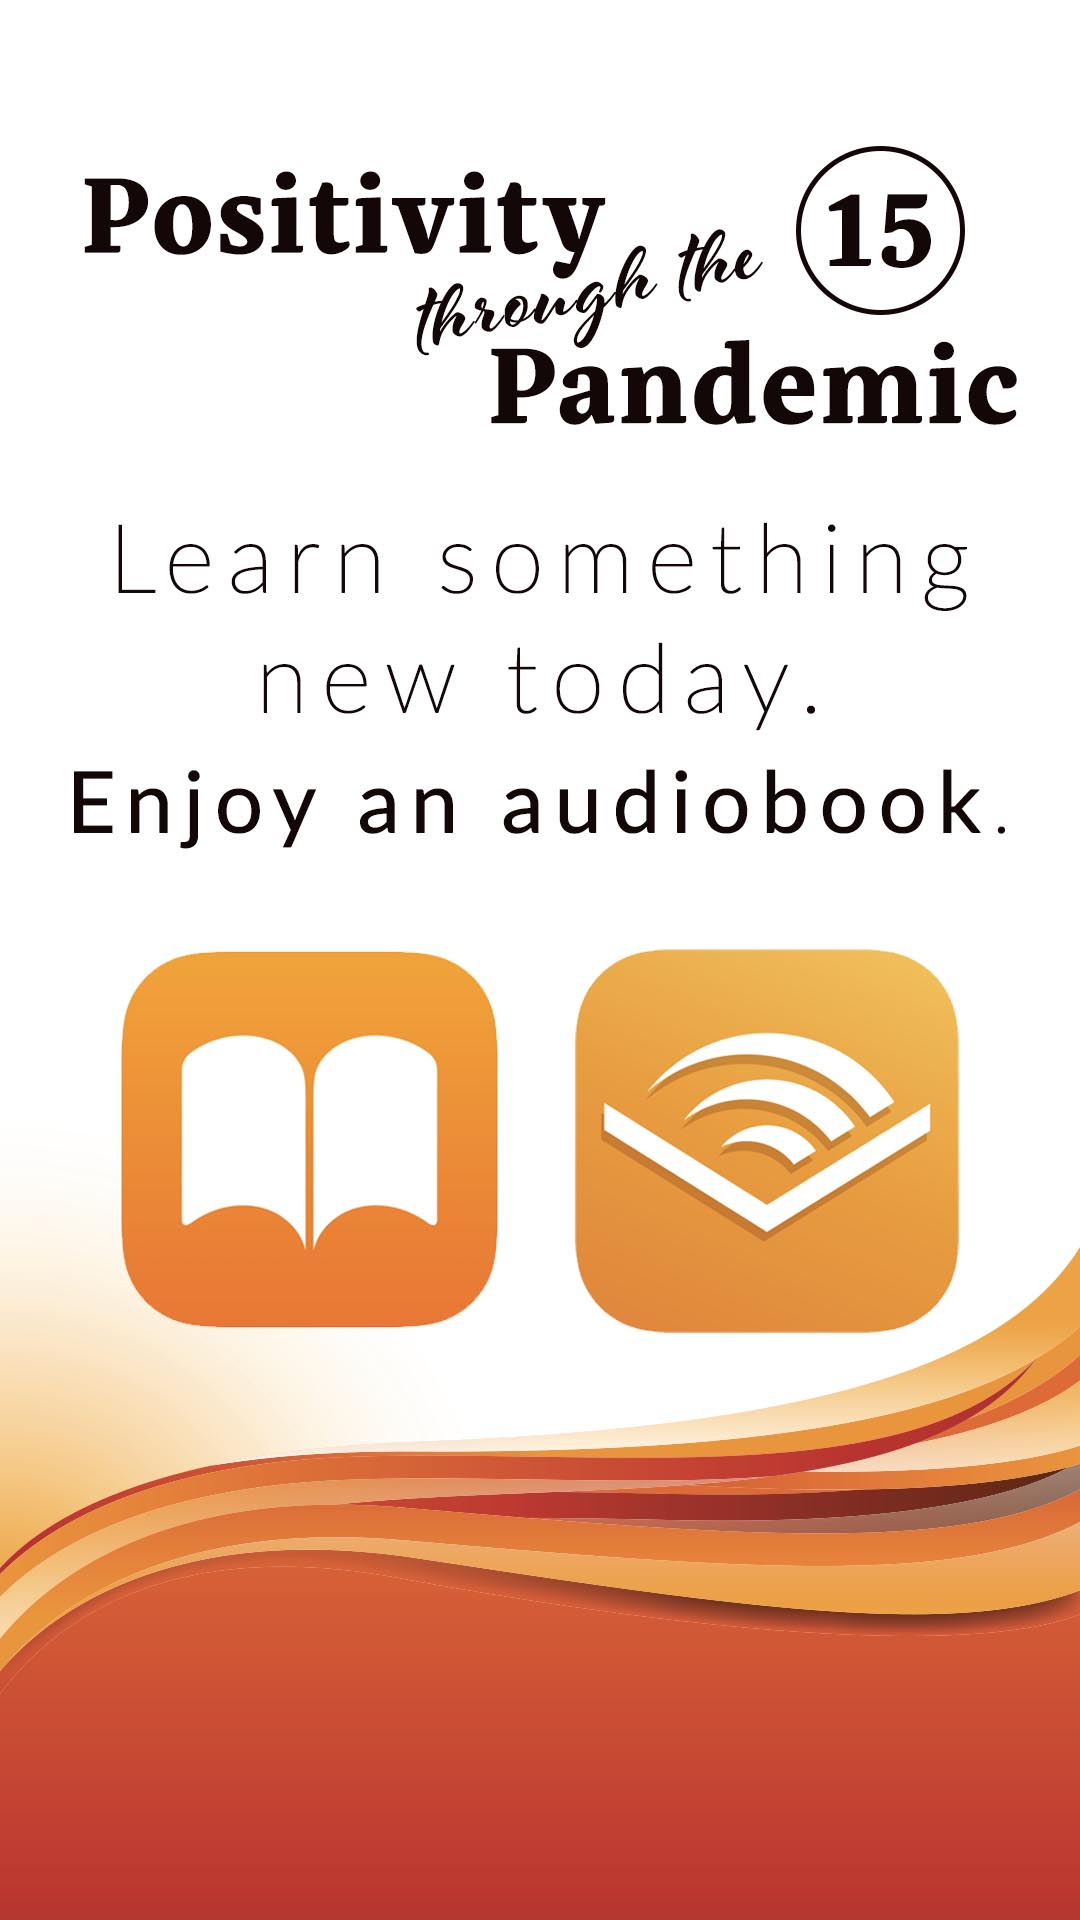 Positivity through the Pandemic #15: Learn something new today enjoy an audiobook